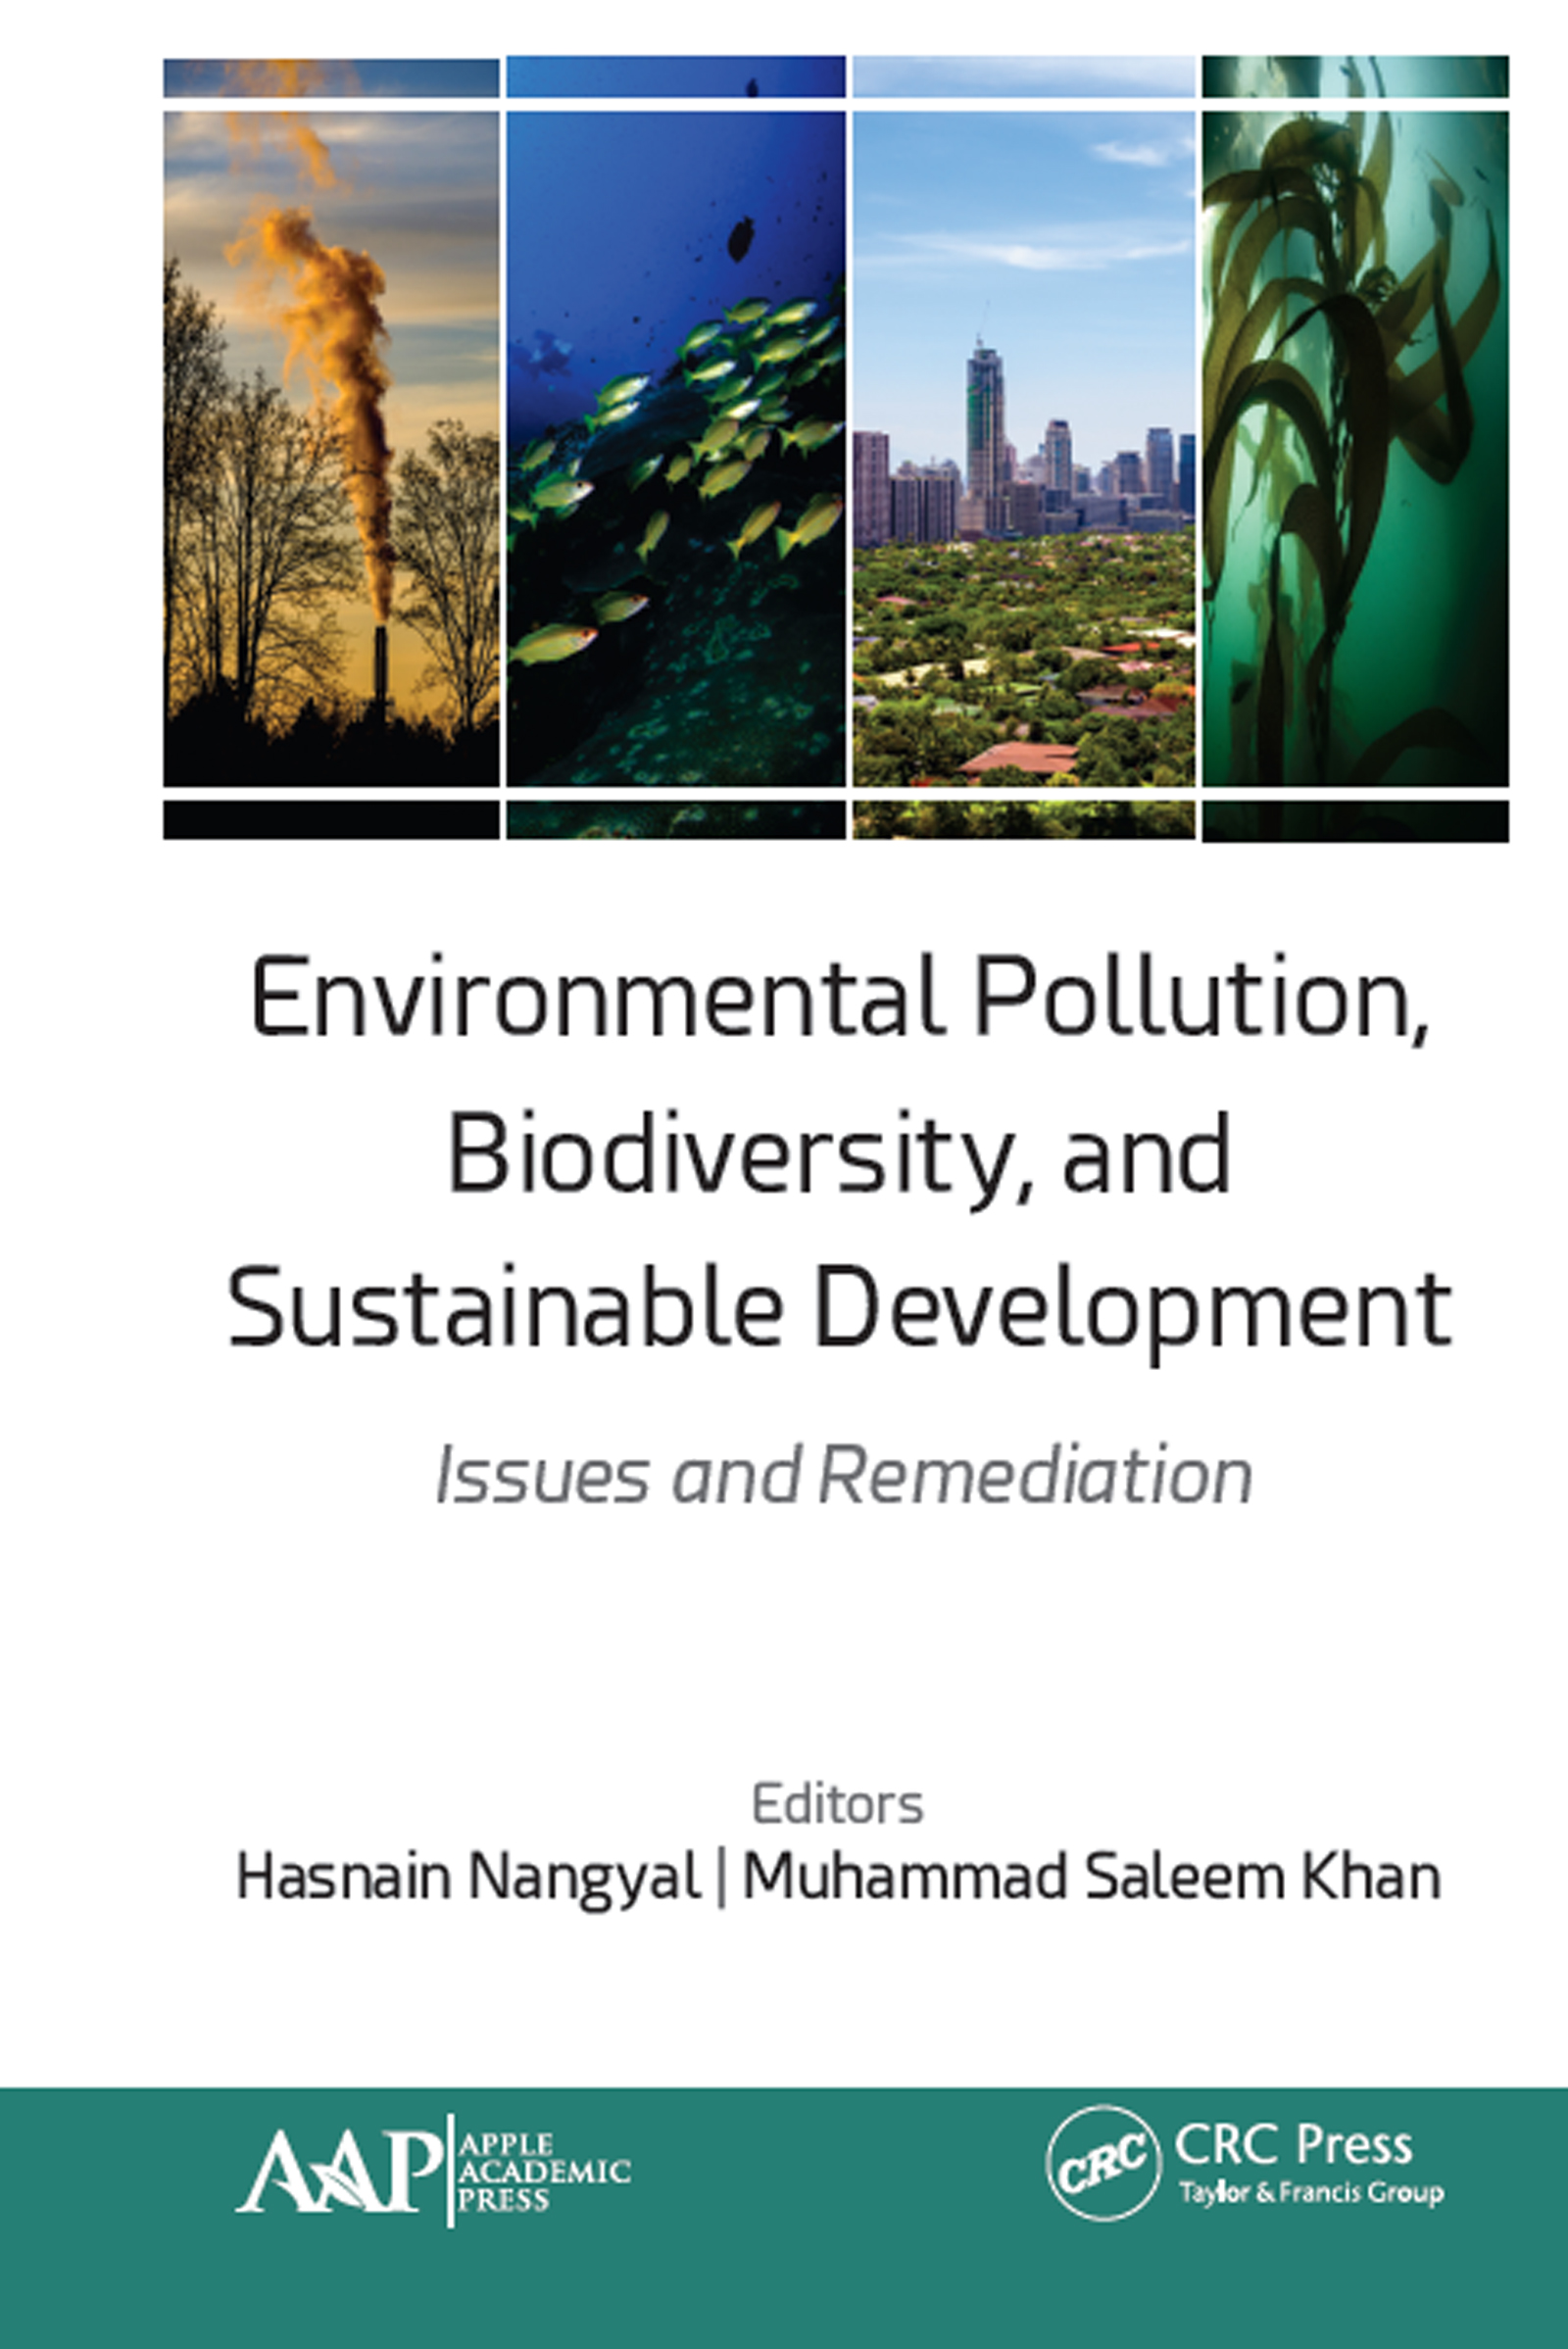 Environmental Pollution, Biodiversity, and Sustainable Development: Issues and Remediation book cover